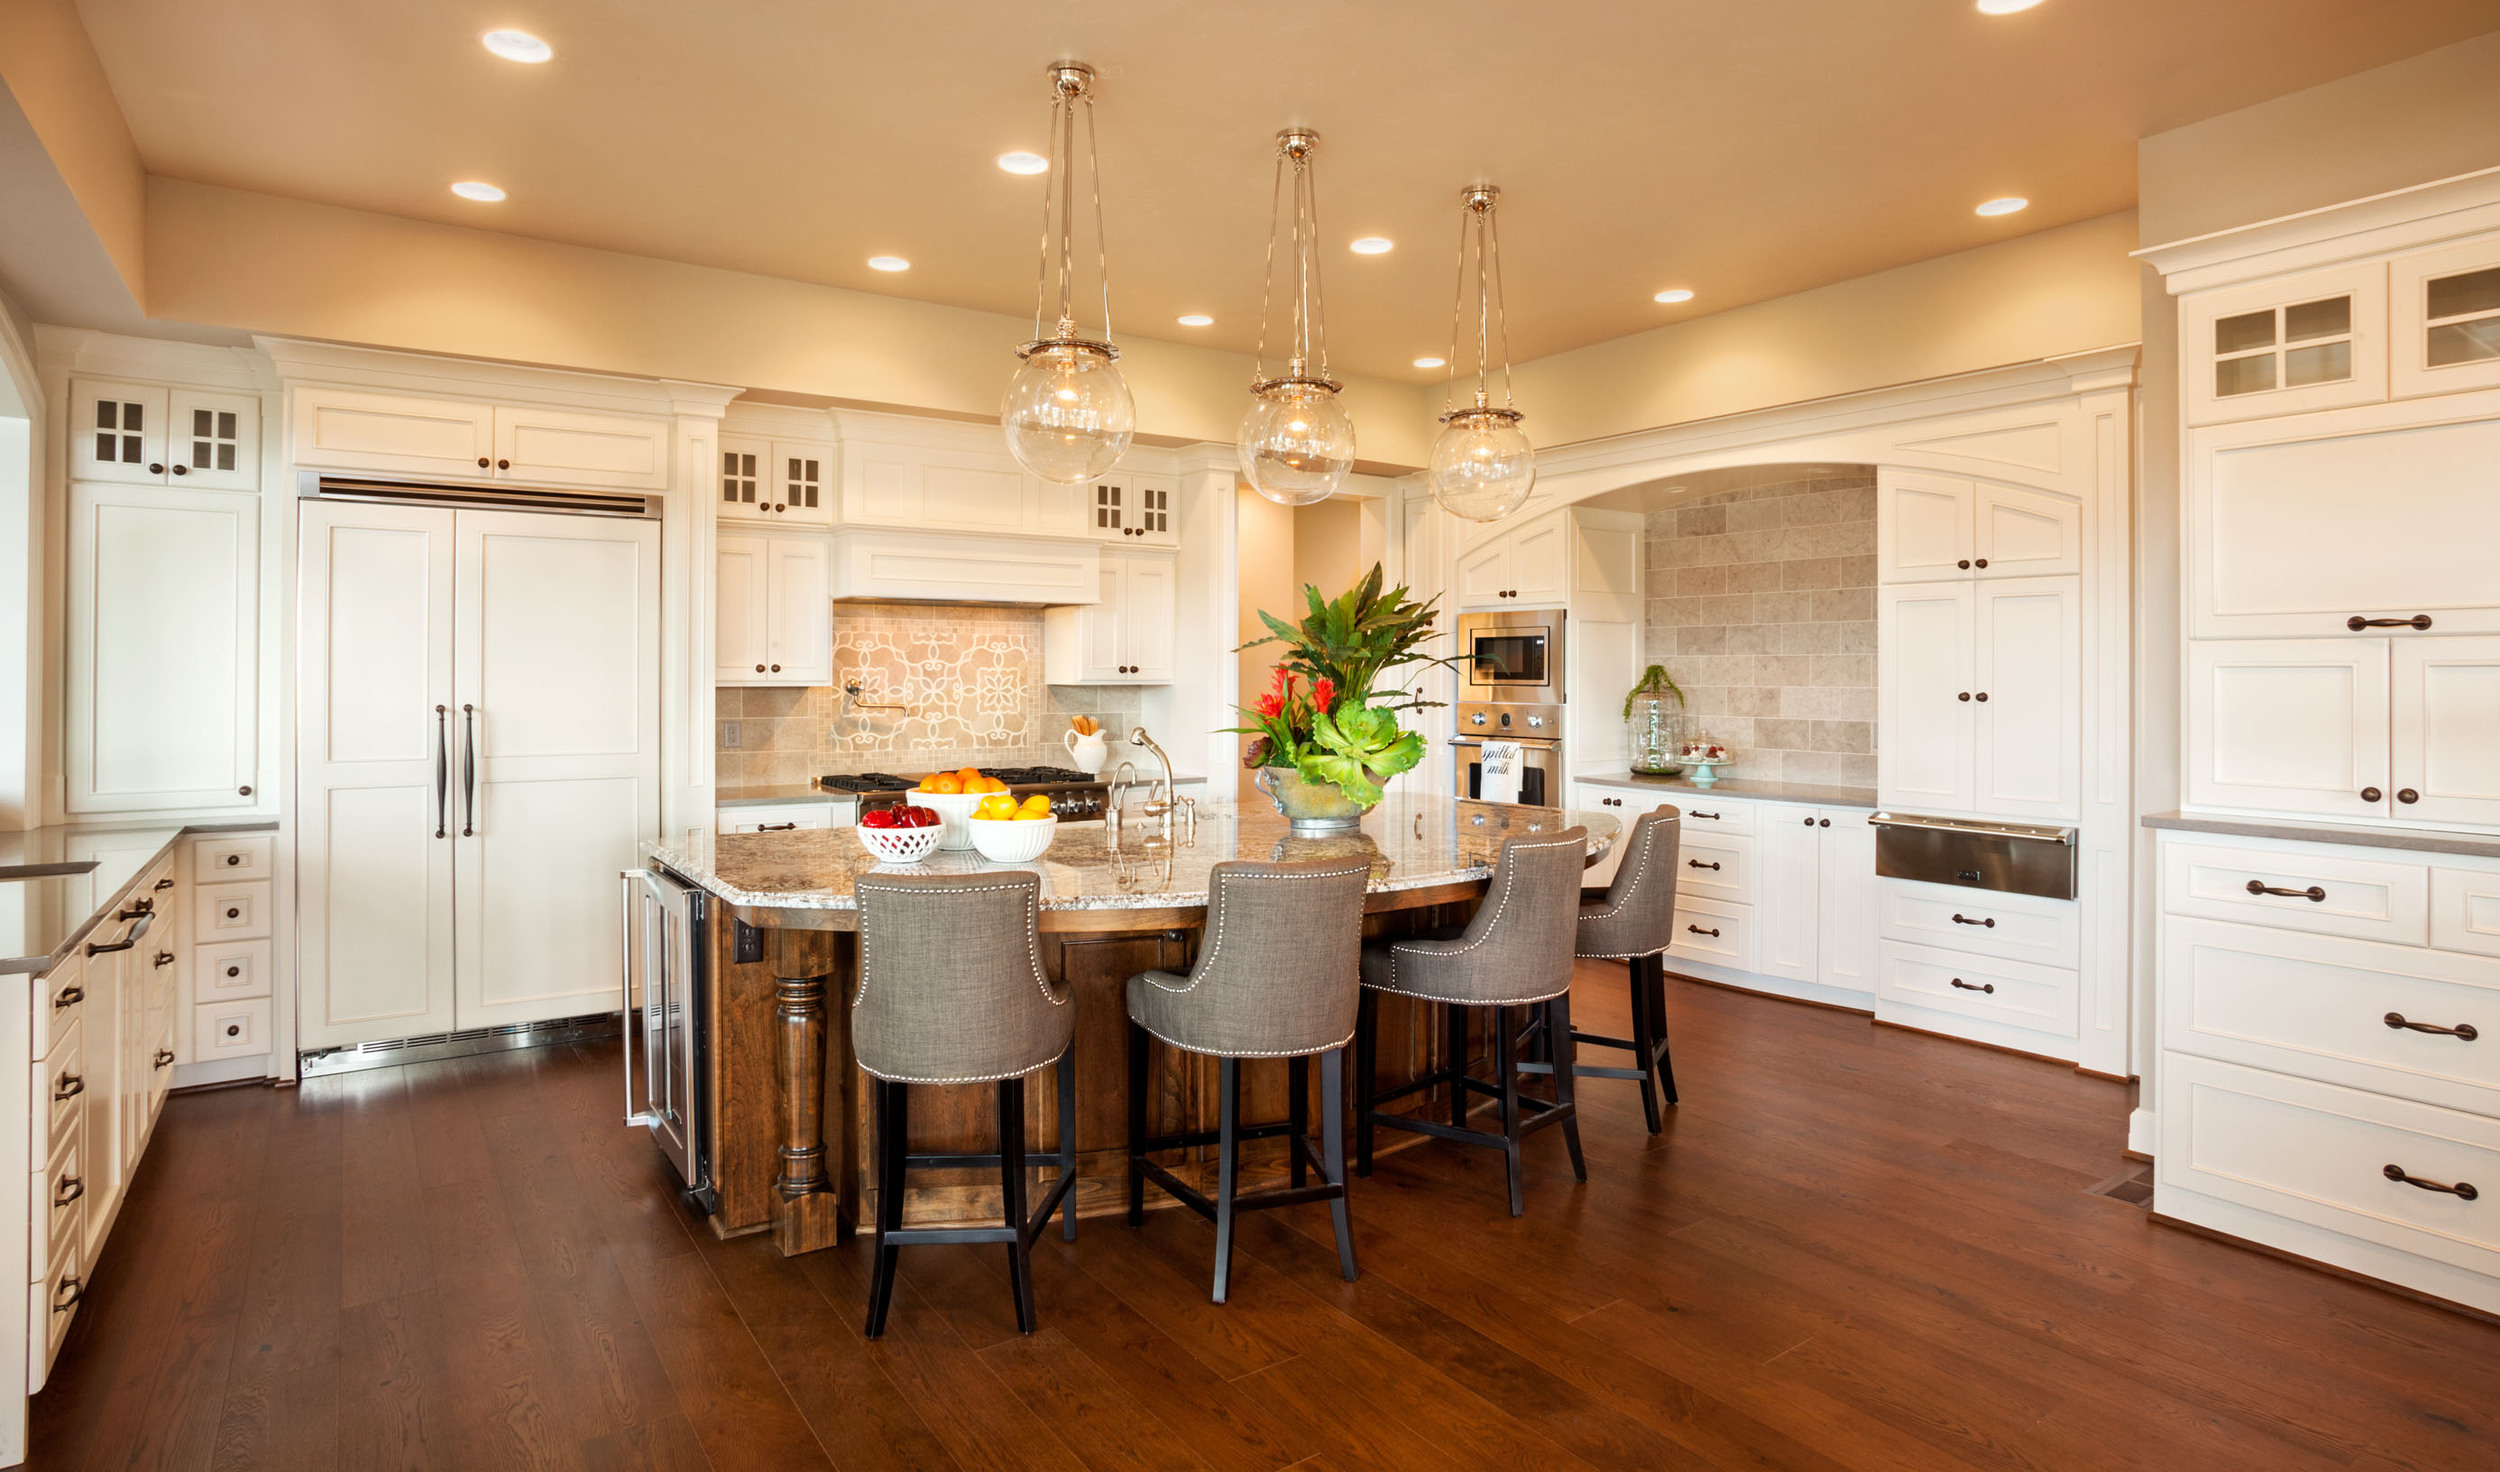 bright kitchen inspiration, a bakers dream kitchen, inspiration for white kitchen cabinetry